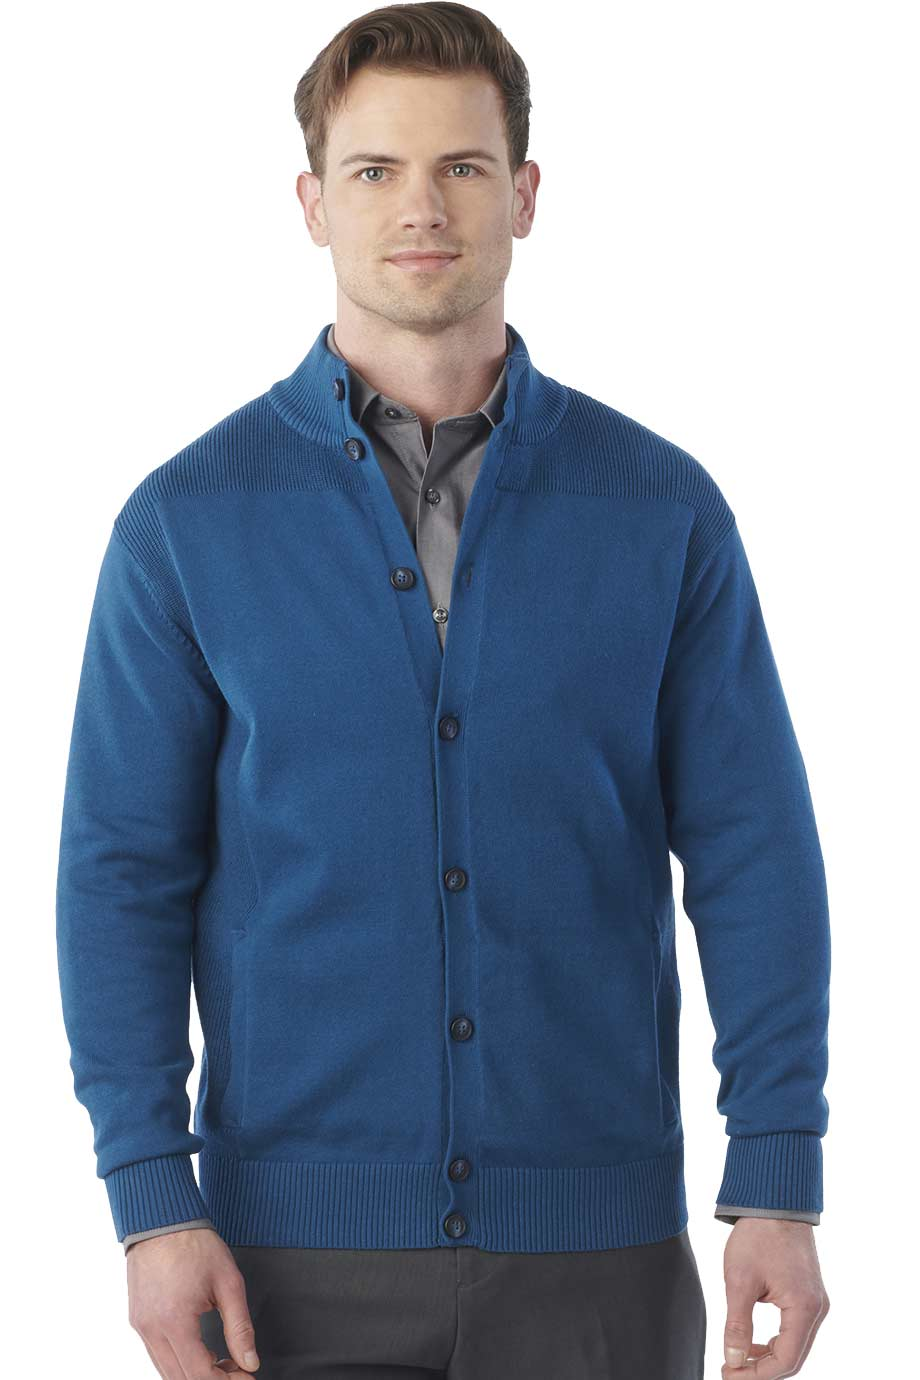 RIB COLLAR BUTTON-FRONT CARDIGAN WITH POCKETS